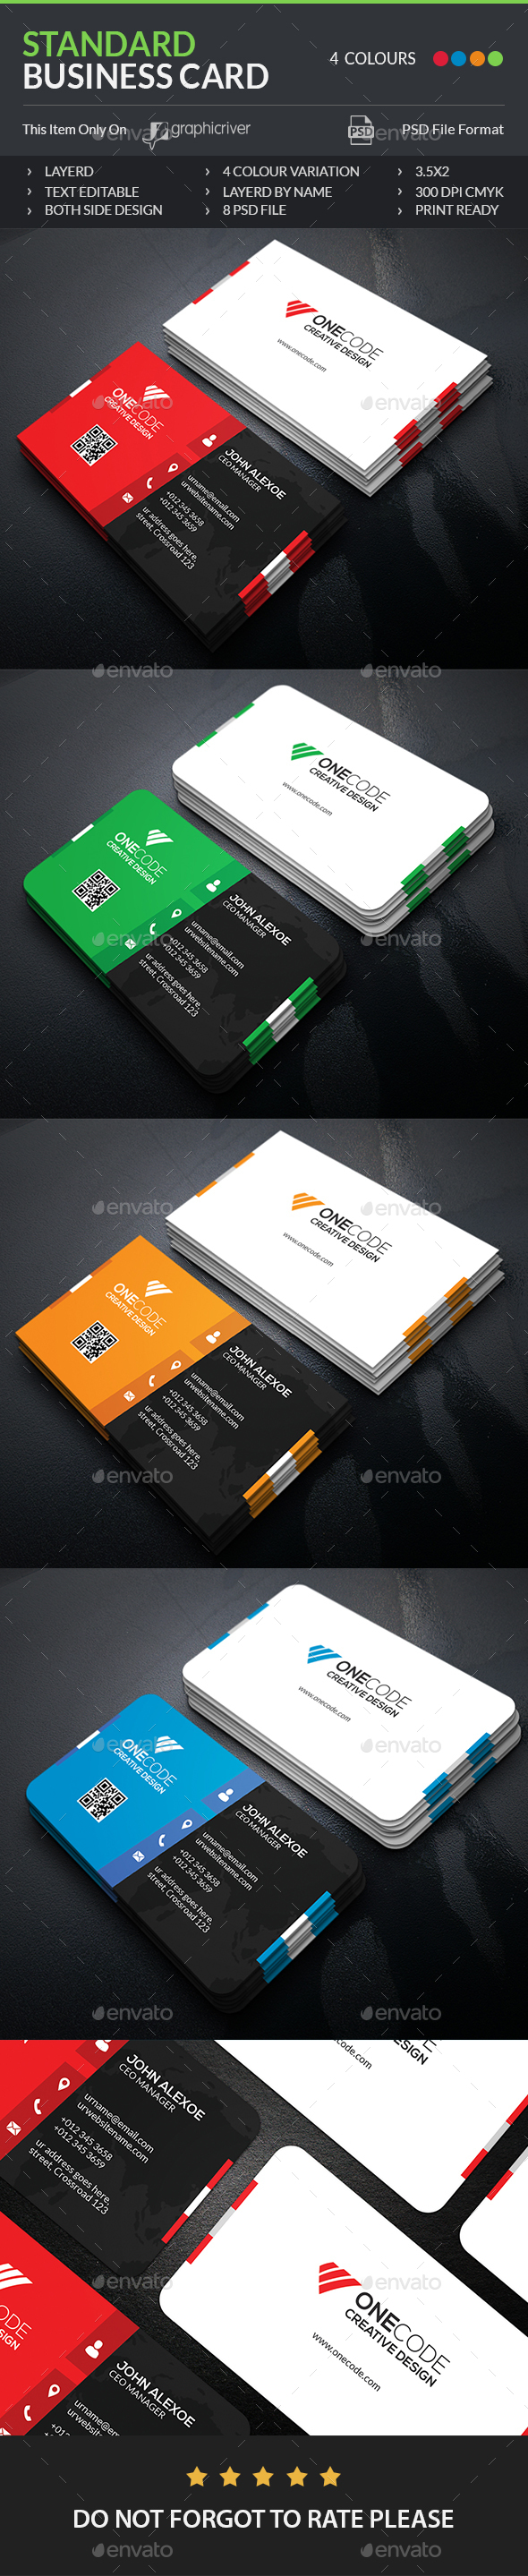 Standard Business Card - Creative Business Cards